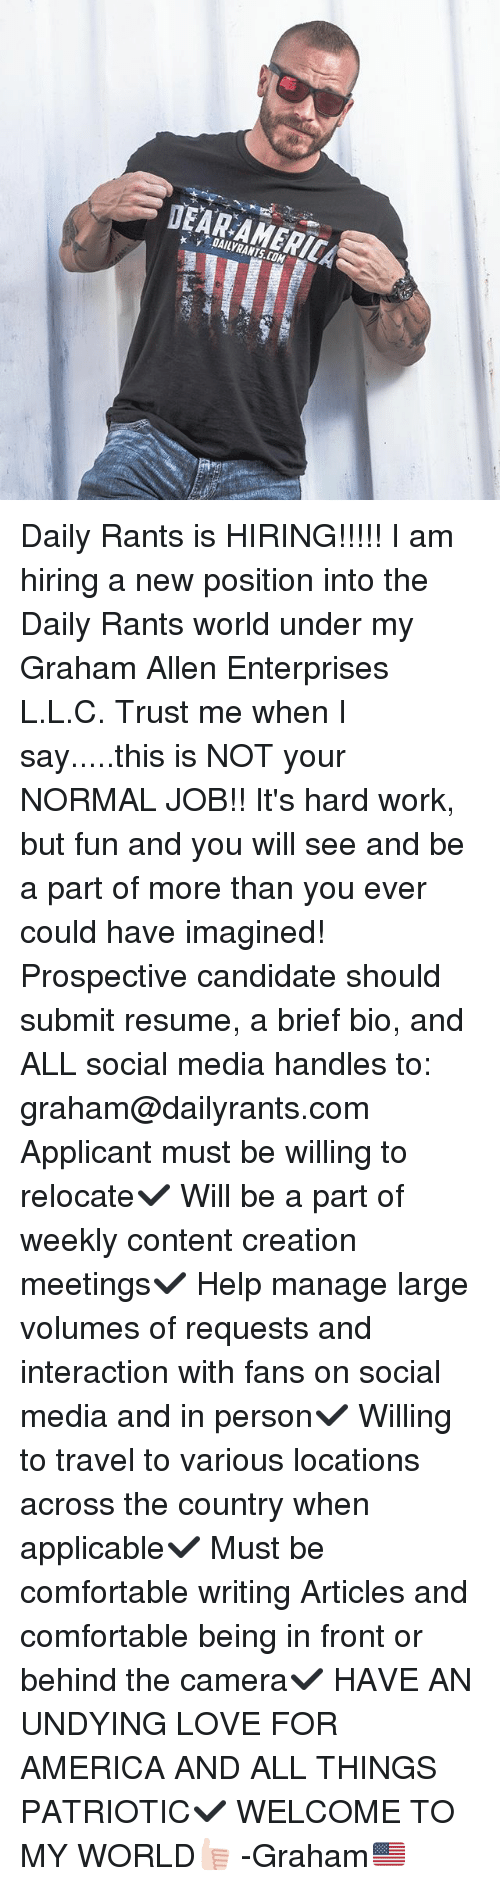 America, Comfortable, and Love: DAILYRANTS.COM Daily Rants is HIRING!!!!! I am hiring a new position into the Daily Rants world under my Graham Allen Enterprises L.L.C. Trust me when I say.....this is NOT your NORMAL JOB!! It's hard work, but fun and you will see and be a part of more than you ever could have imagined! Prospective candidate should submit resume, a brief bio, and ALL social media handles to: graham@dailyrants.com Applicant must be willing to relocate✔️ Will be a part of weekly content creation meetings✔️ Help manage large volumes of requests and interaction with fans on social media and in person✔️ Willing to travel to various locations across the country when applicable✔️ Must be comfortable writing Articles and comfortable being in front or behind the camera✔️ HAVE AN UNDYING LOVE FOR AMERICA AND ALL THINGS PATRIOTIC✔️ WELCOME TO MY WORLD👍🏻 -Graham🇺🇸